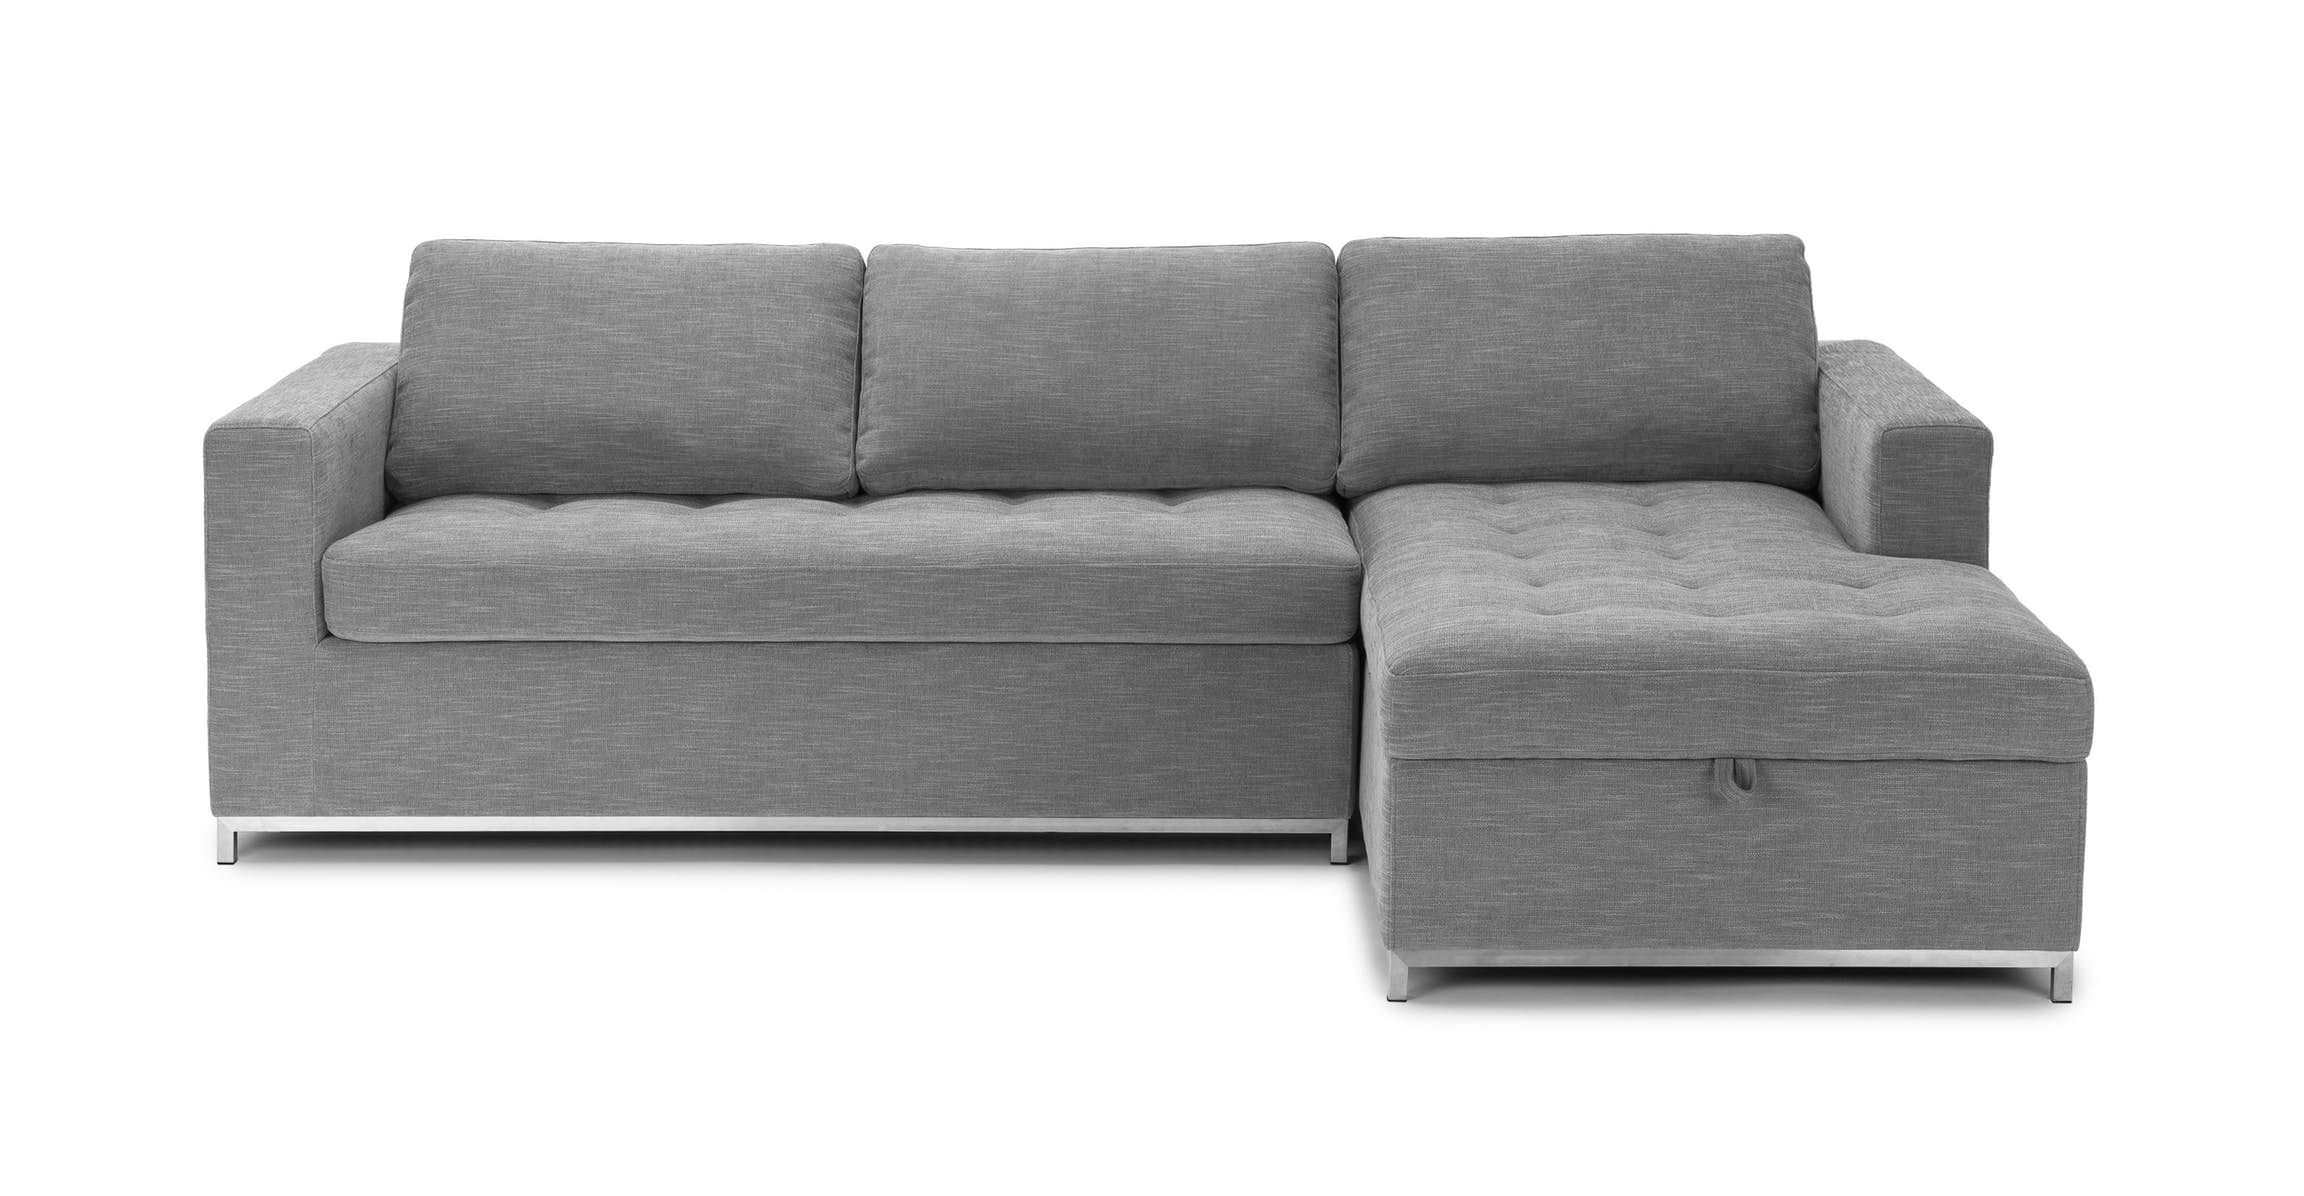 Mid Century Modern Sectional Sofas Article In 2020 Modern Sofa Sectional Modern Sofa Bed Modern Sofa Couch